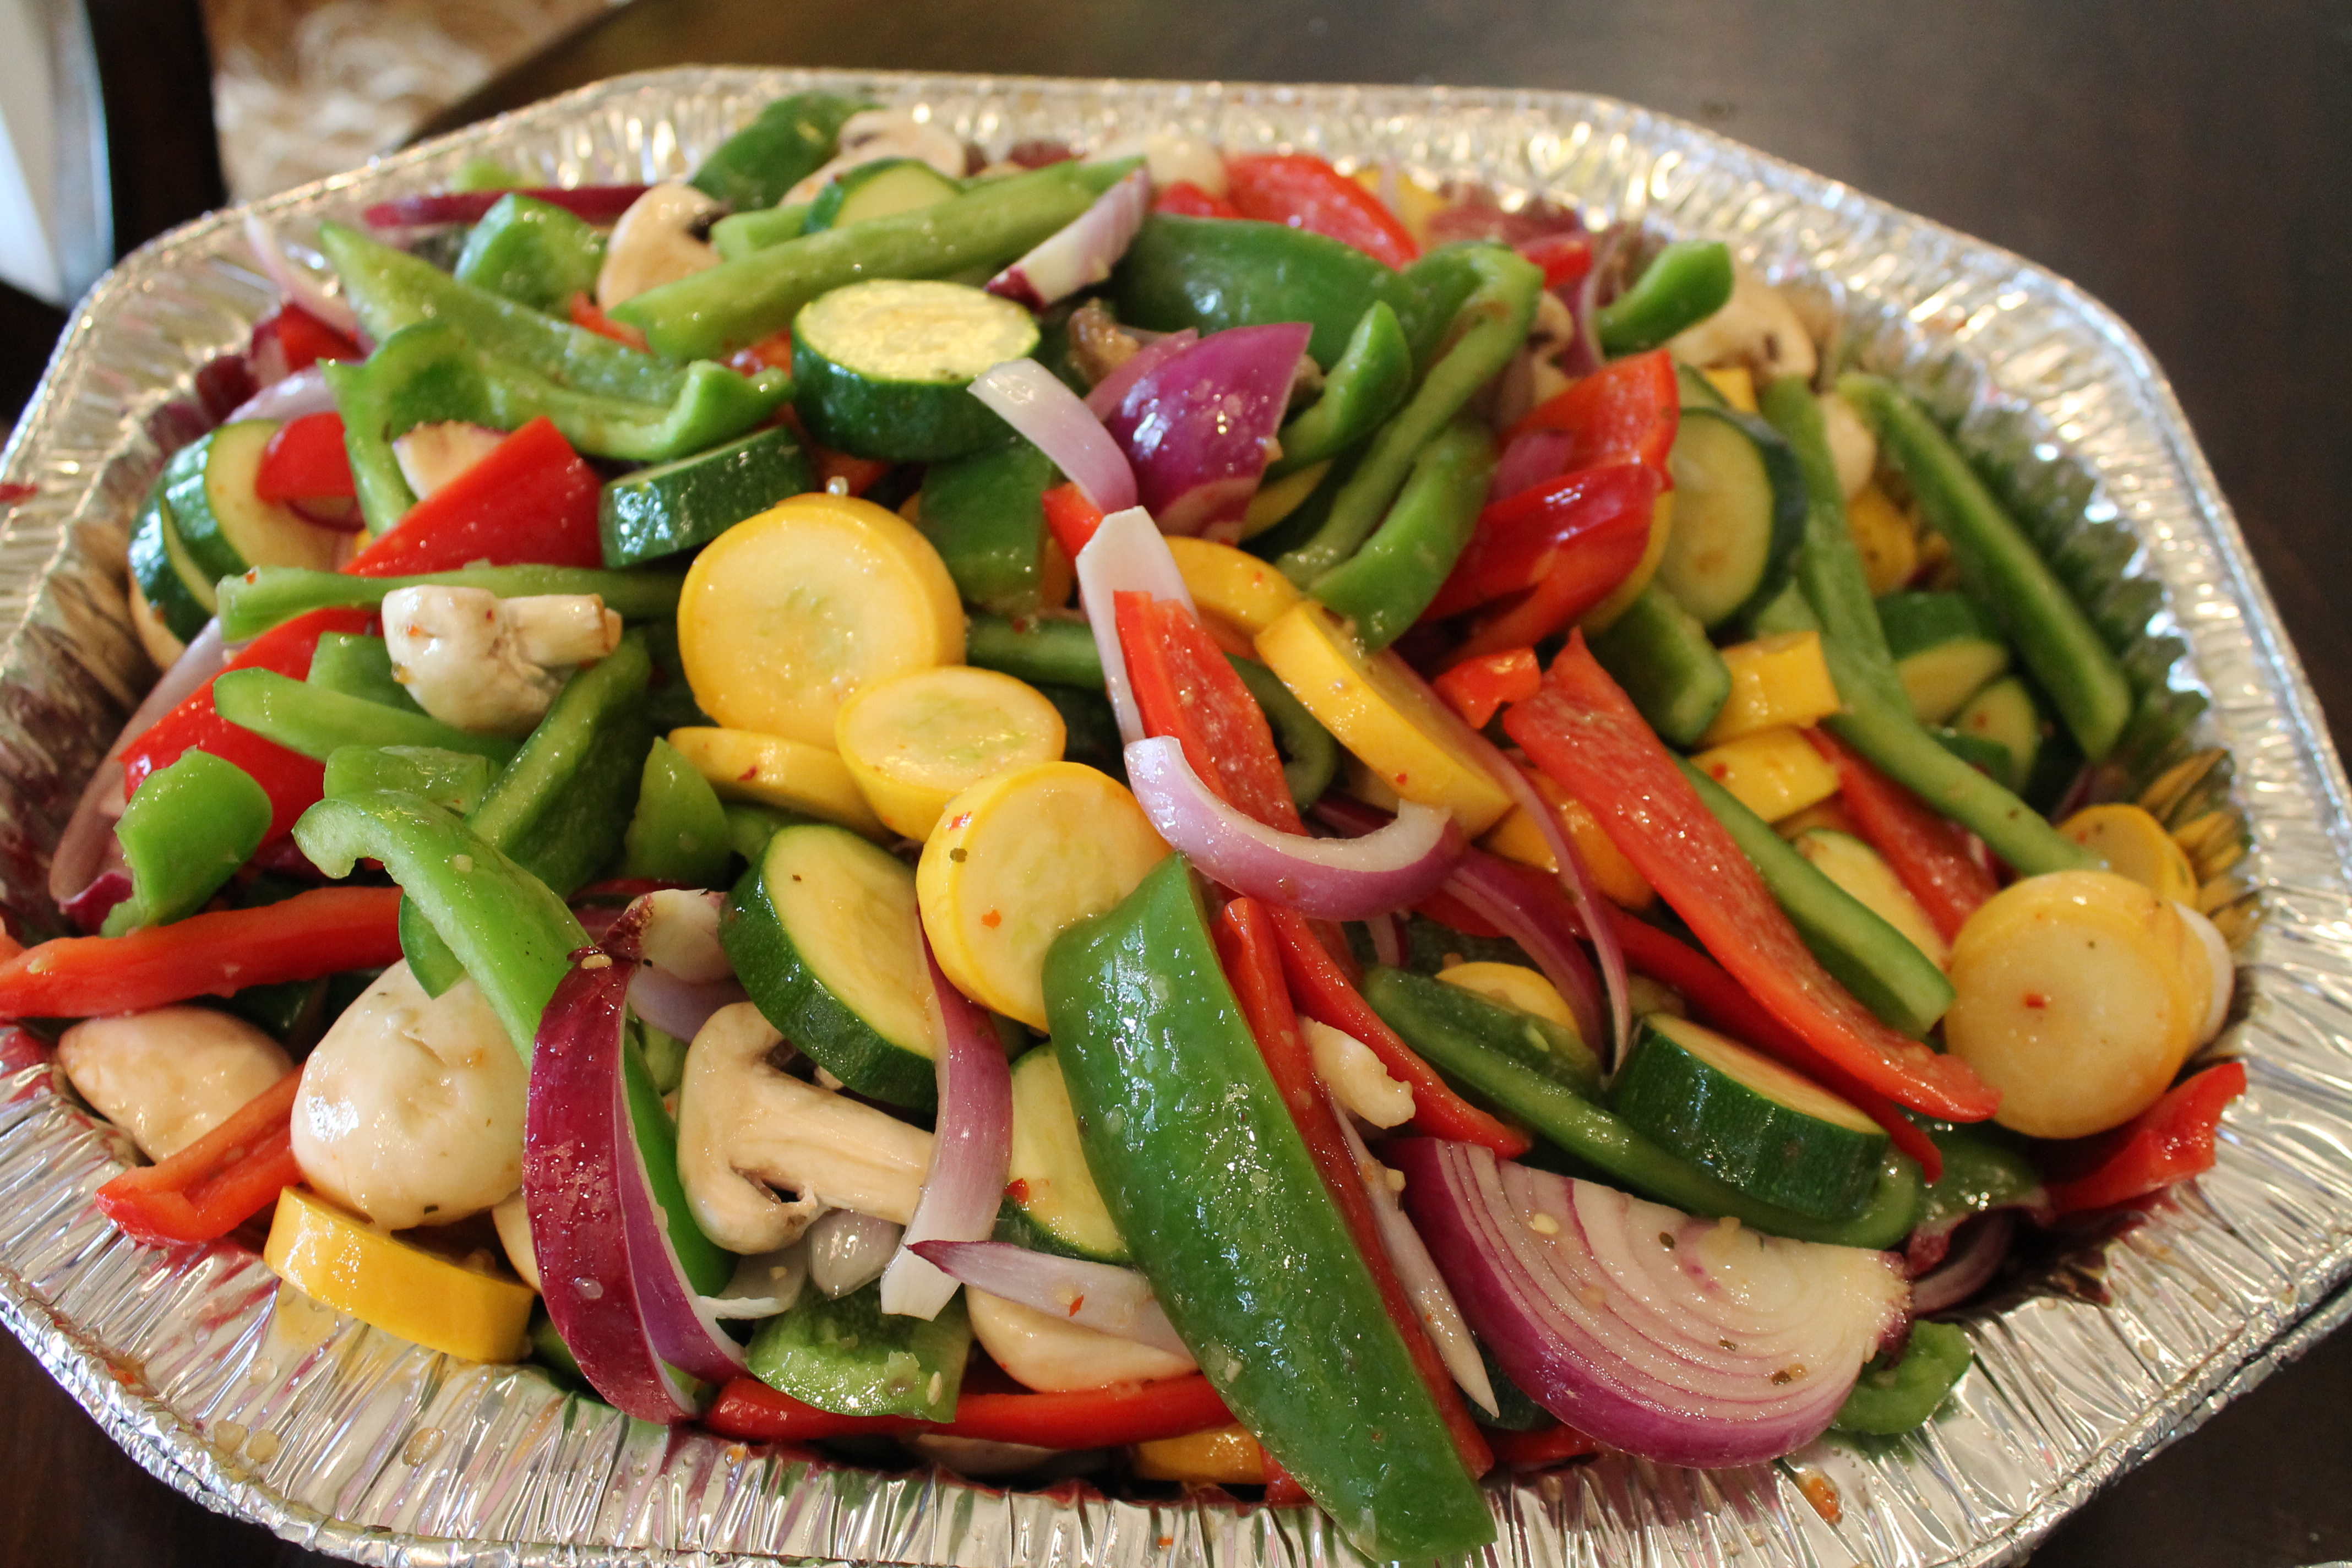 Fresh Grilled Vegetable Medley with Dip